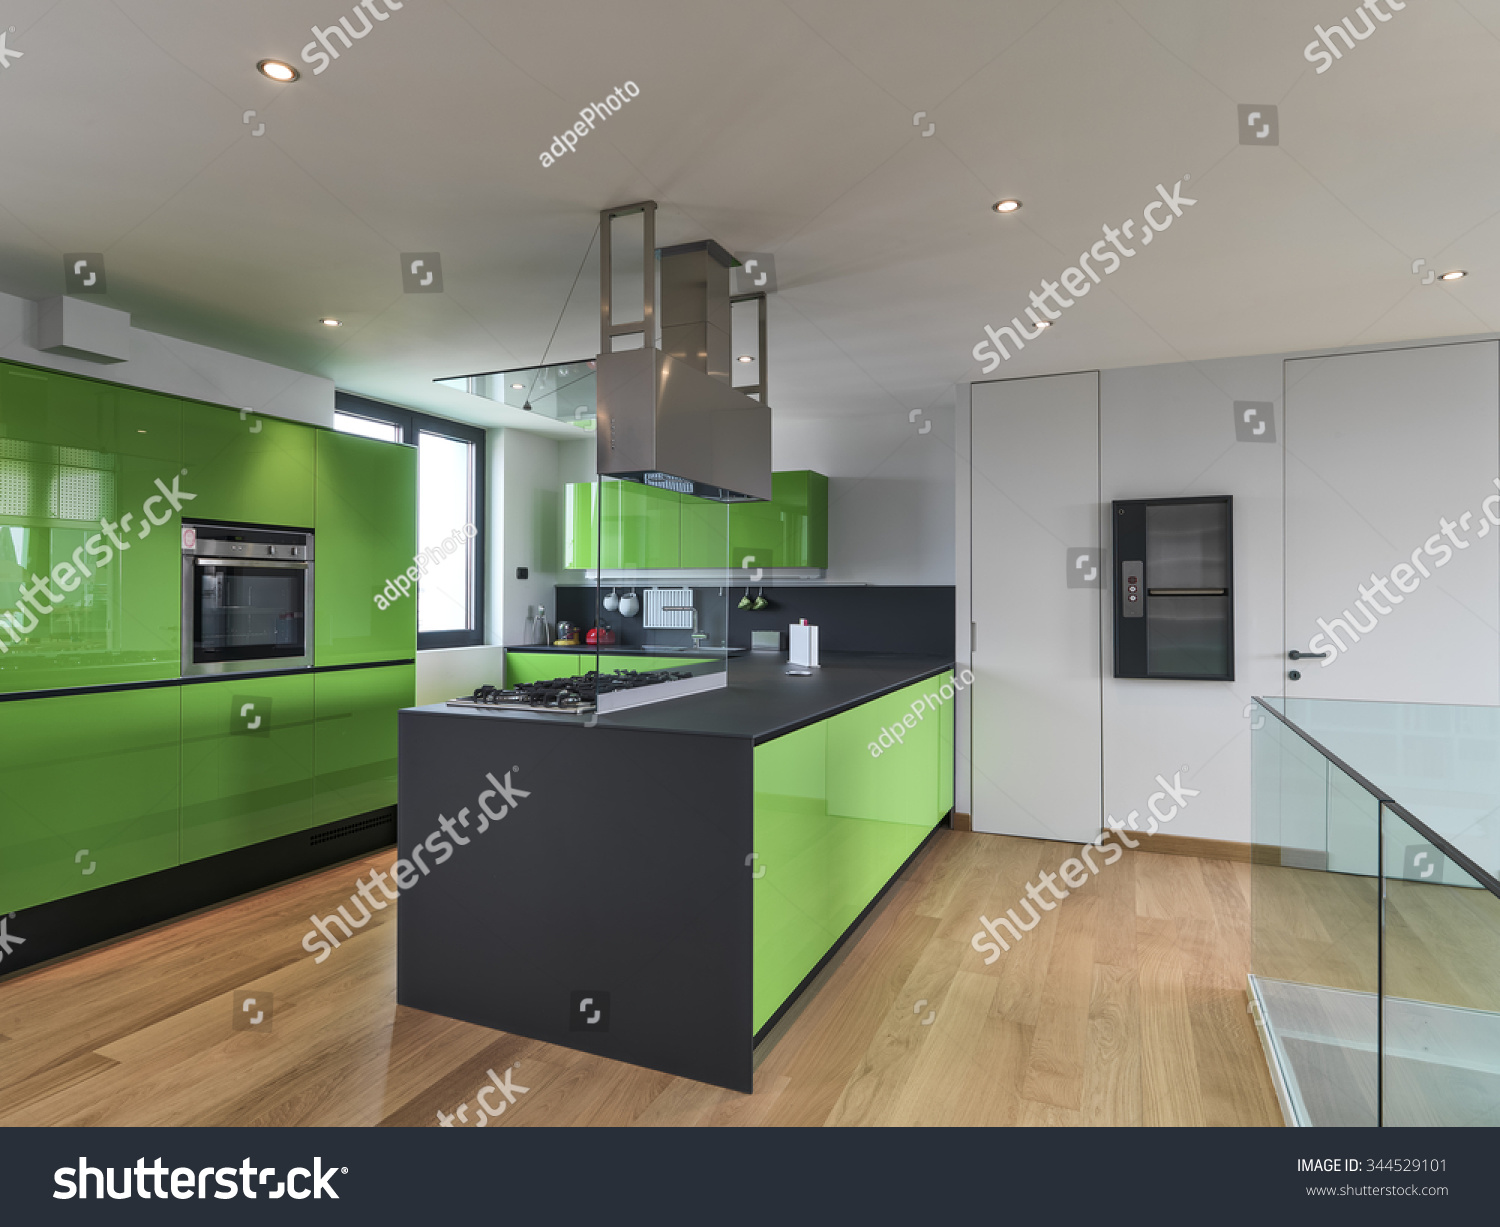 Attic Kitchen Green Kitchen With Kitchen Island In The Attic Room With Wood